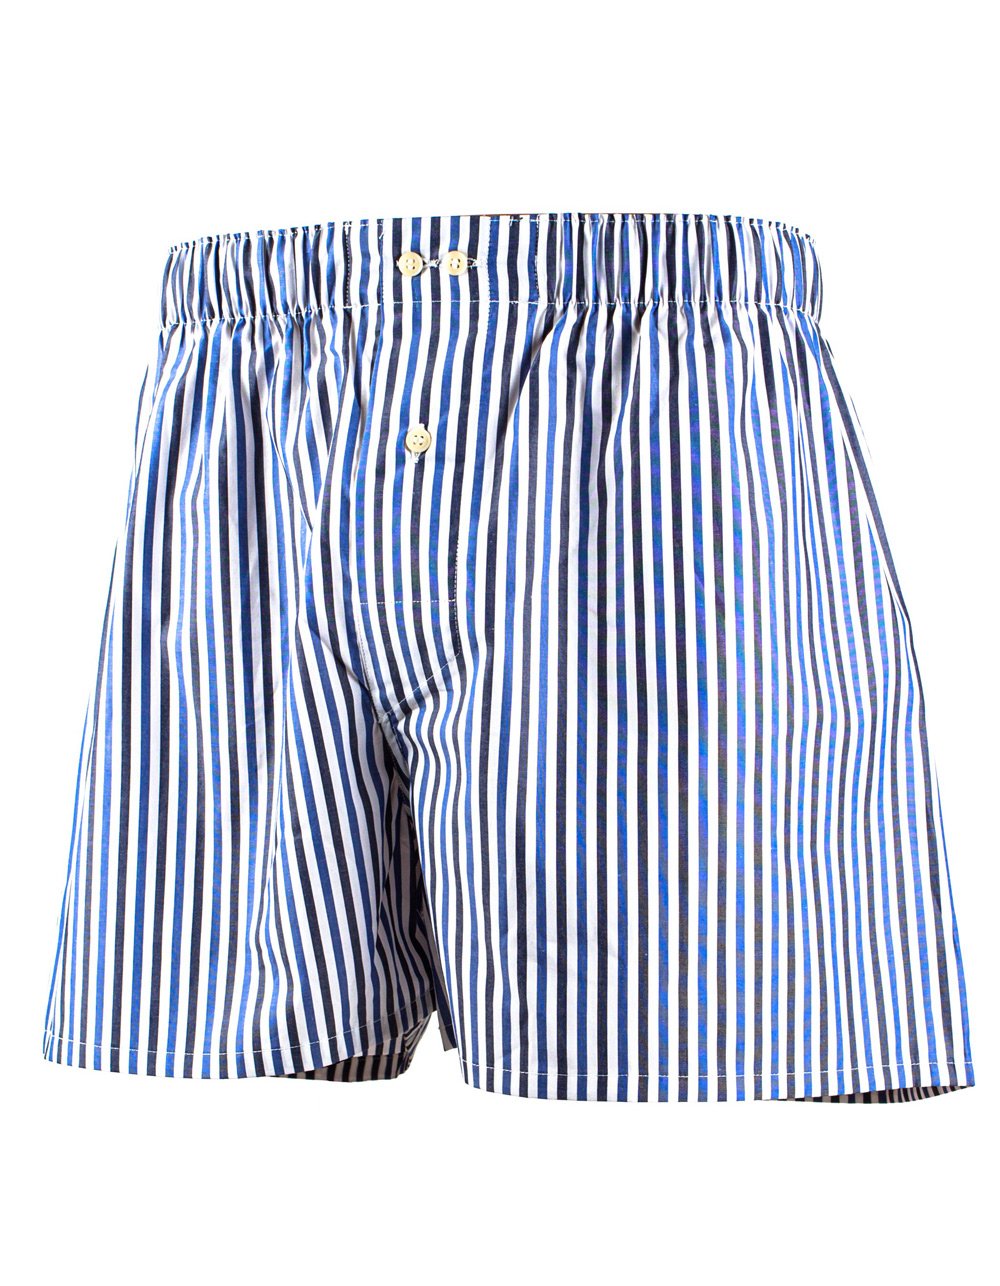 Blue and white micro stripes boxer shorts